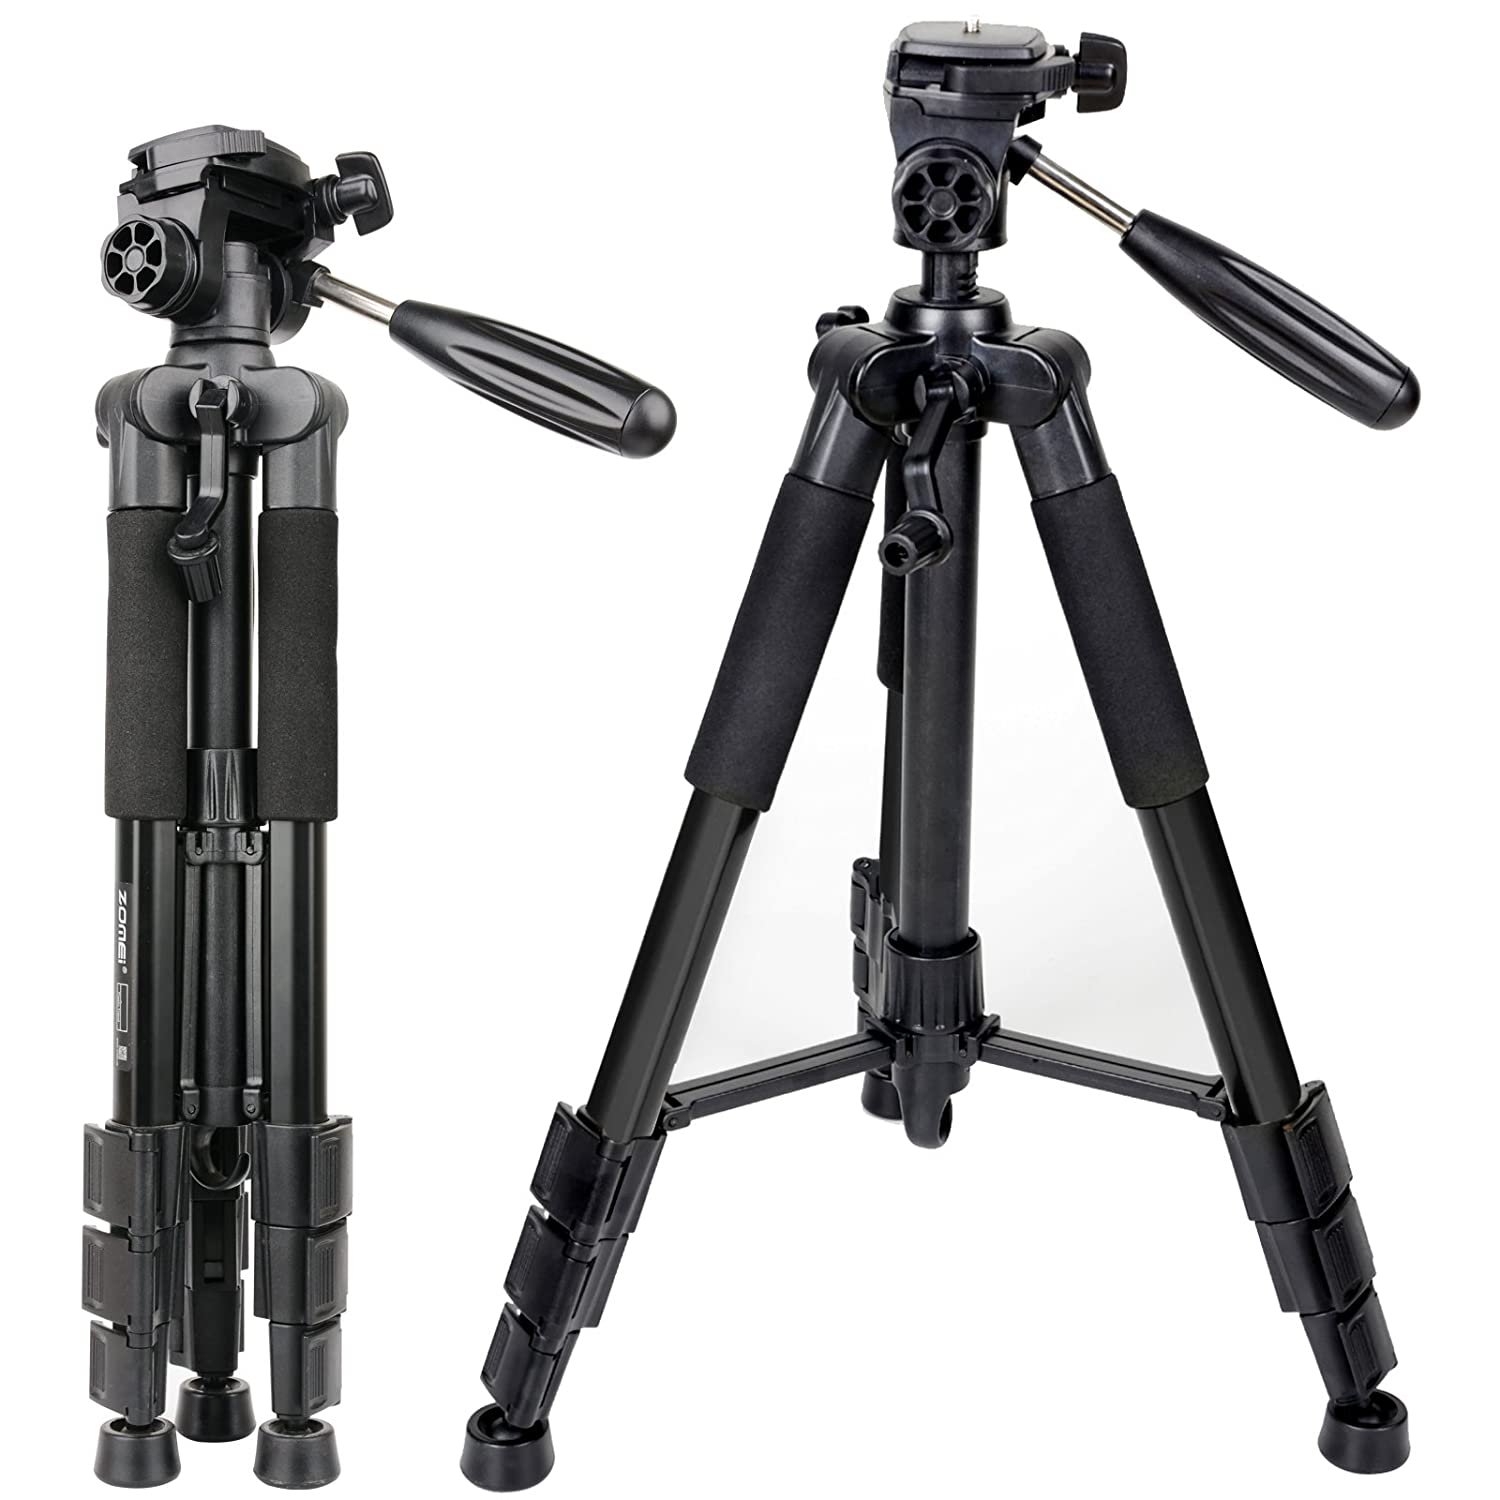 Top 20 Best Professional Tripods Reviews 2016 2017 On Flipboard By Profesional Video Tripod Kits Kingjoy Vt 2500 Bonfoto Q111 Portable With Pan Head For Camera Dslr Dv Canon Nikon Sony